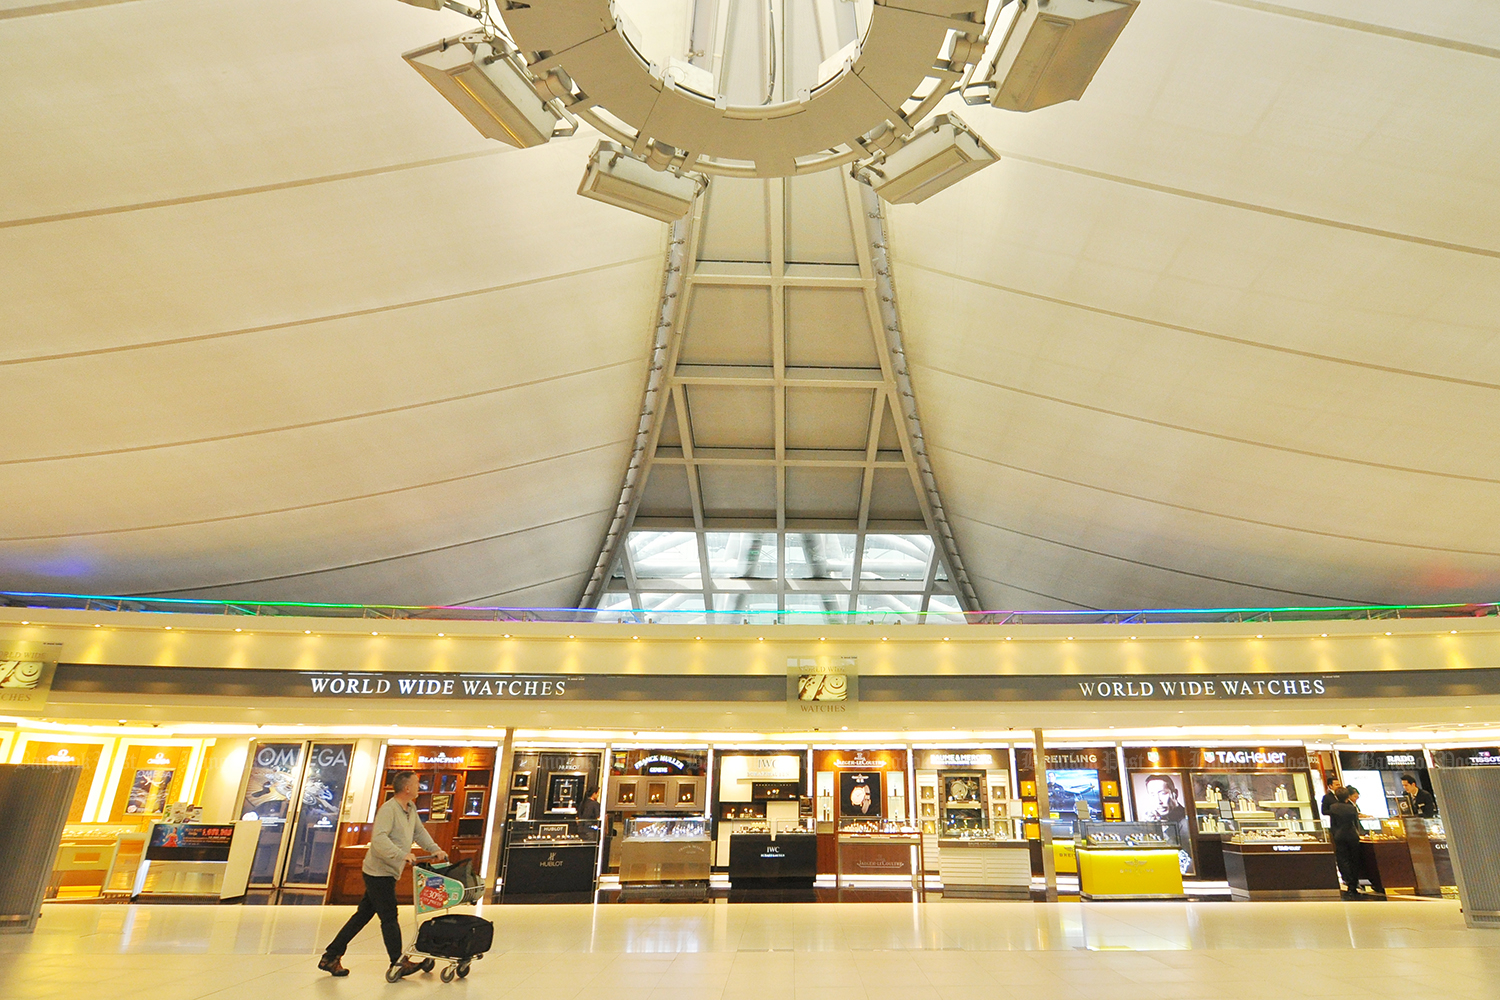 King Power promised to pay Airports of Thailand more than double the expected returns from duty-free shops and commercial zones. (Bangkok Post photo)